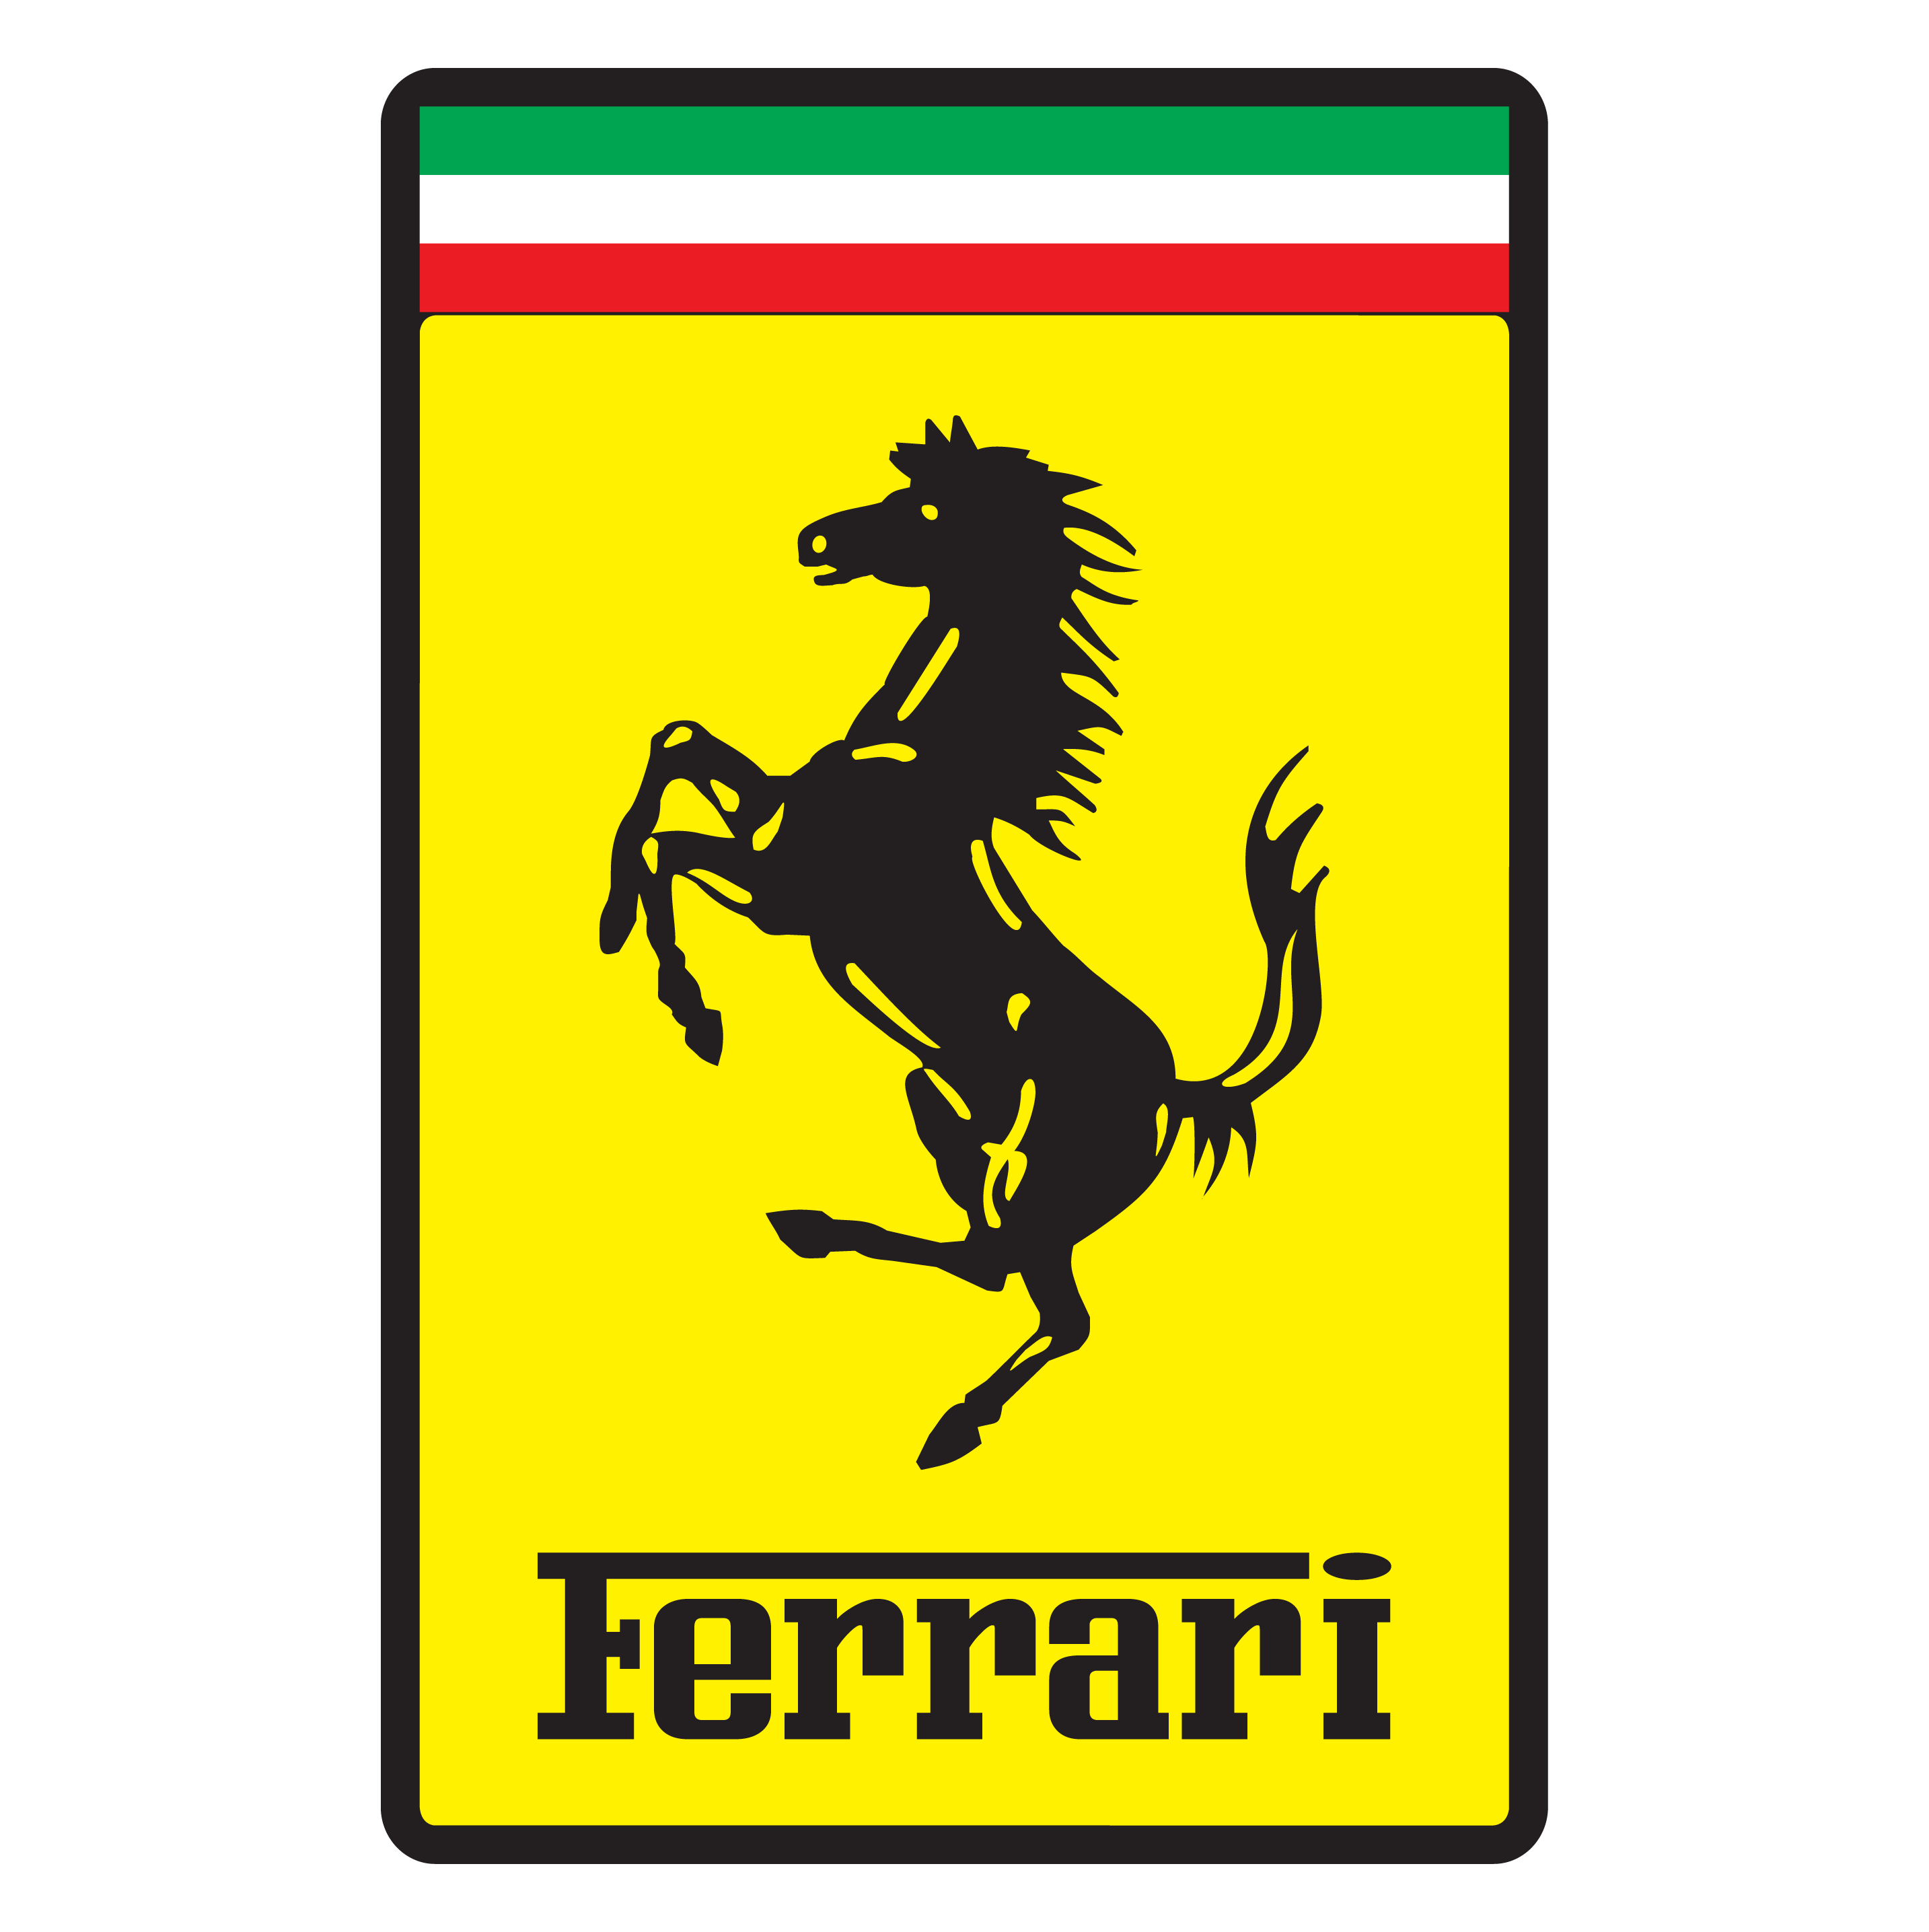 Ferrari Aftermarket A/c For Classic Cars